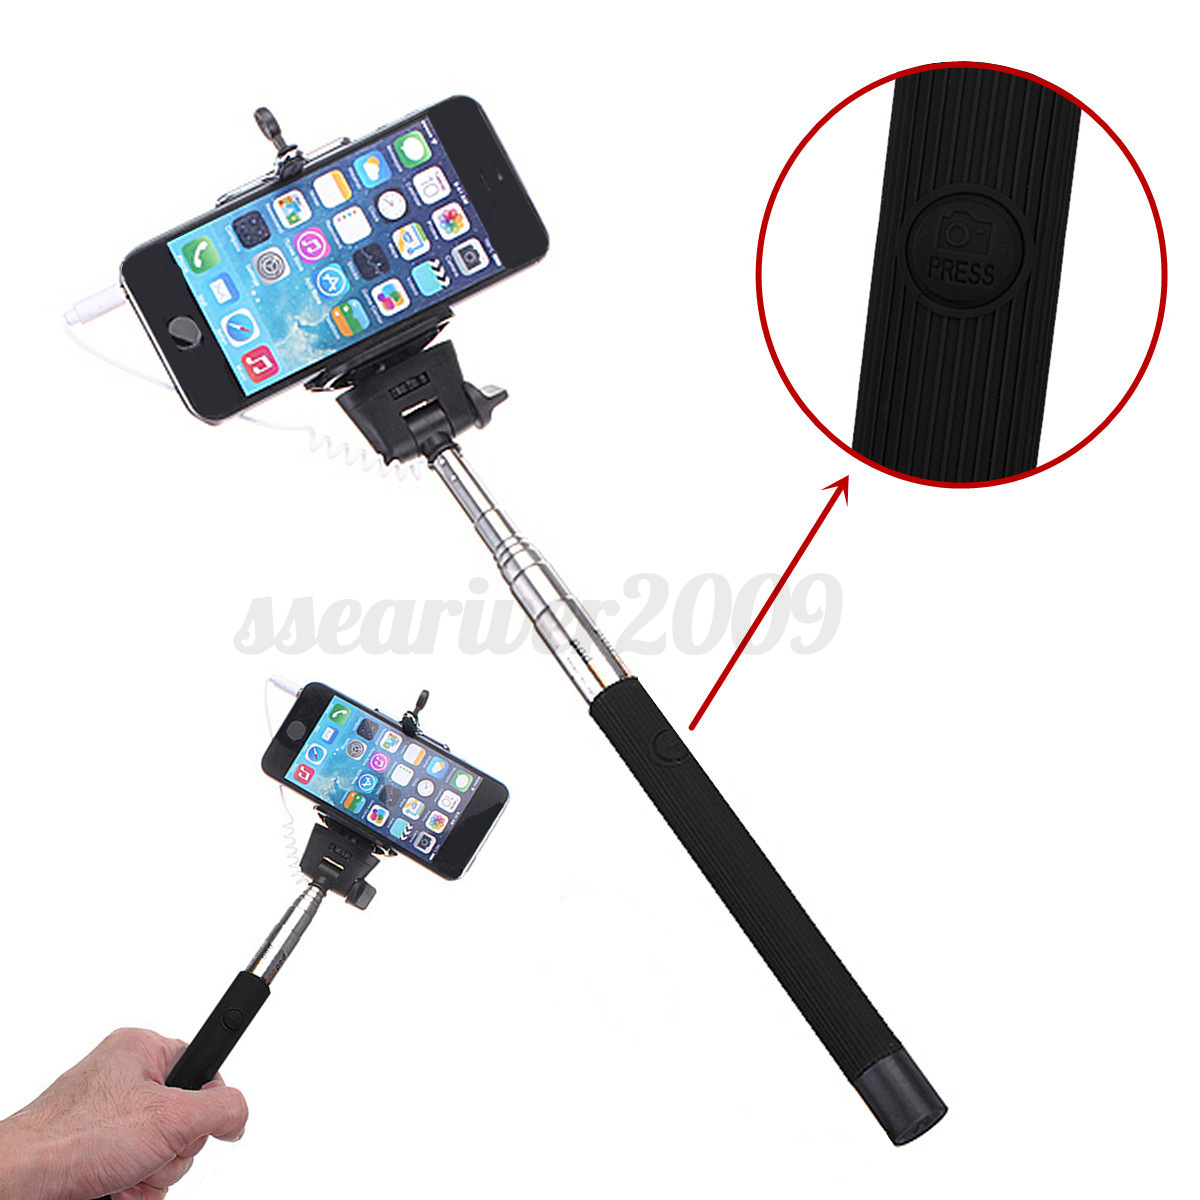 remote extensible monopod party selfie stick perfect for iphone samsung huawei ebay. Black Bedroom Furniture Sets. Home Design Ideas